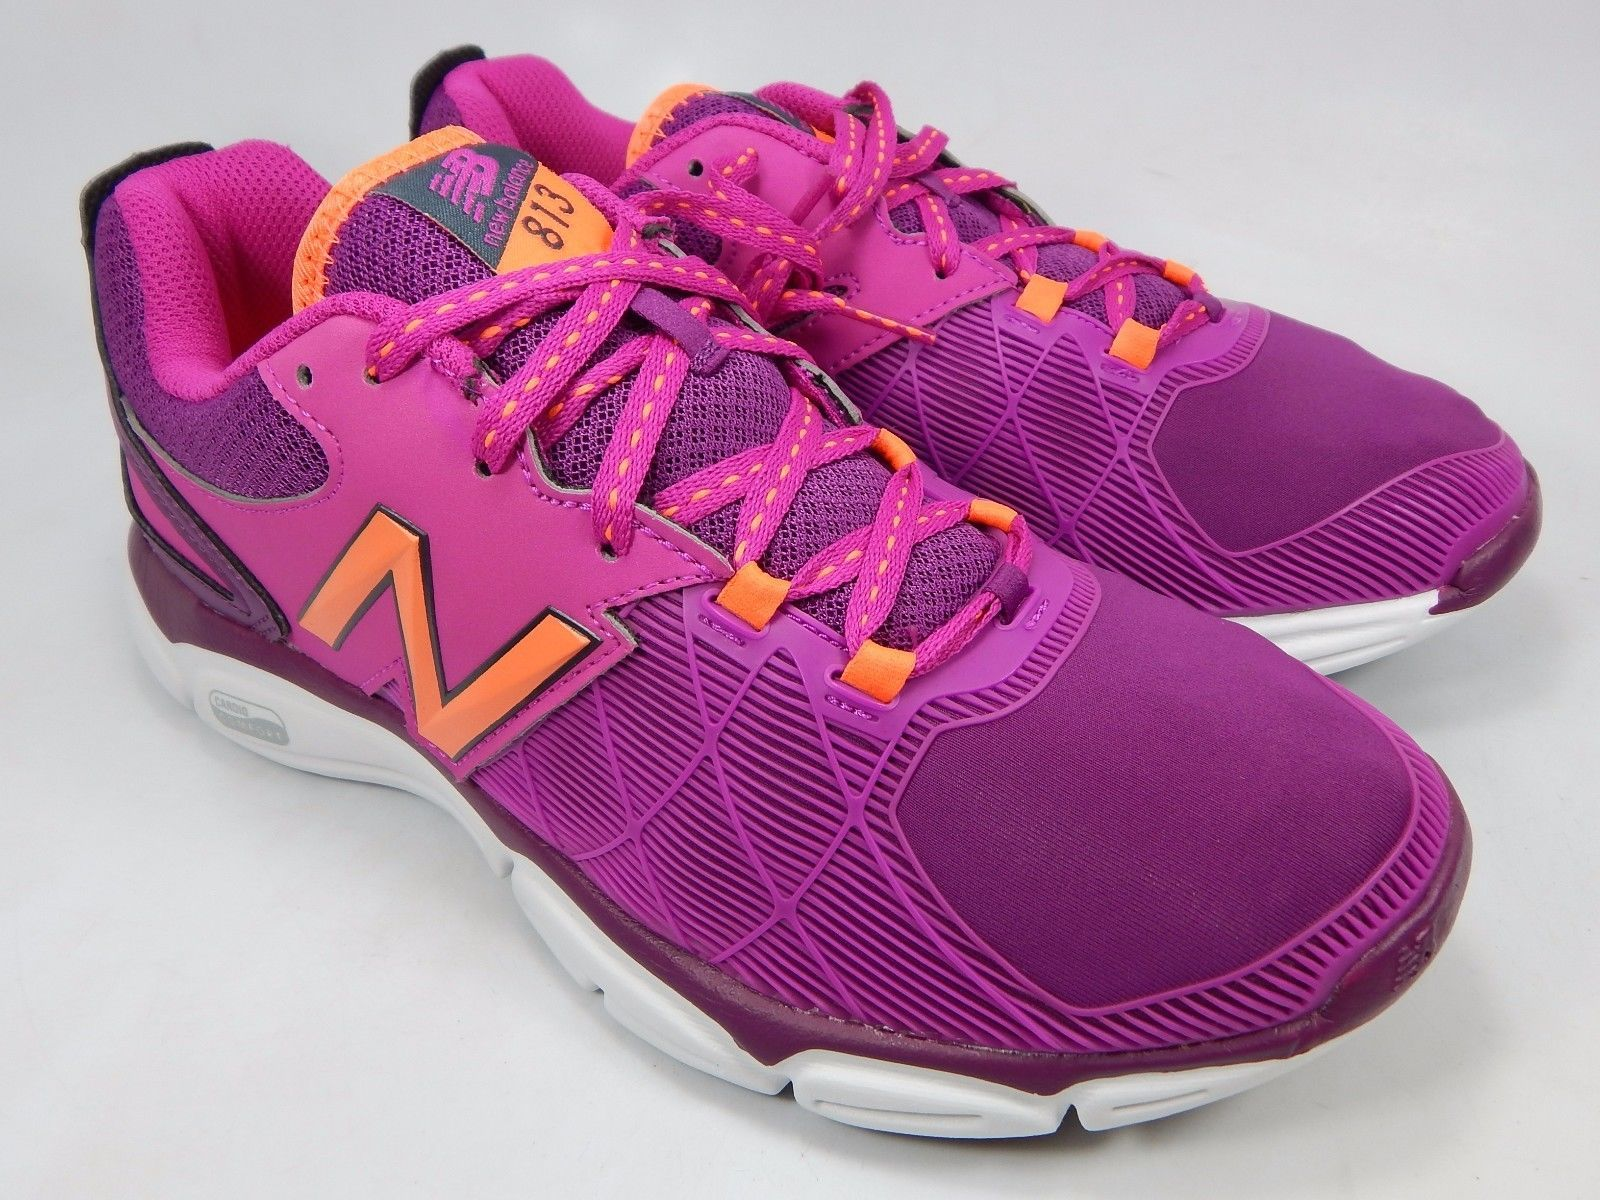 New Balance 813 v3 Women's Cross Trainer Shoes Size US 8.5 M (B) EU 40 WX813PK3